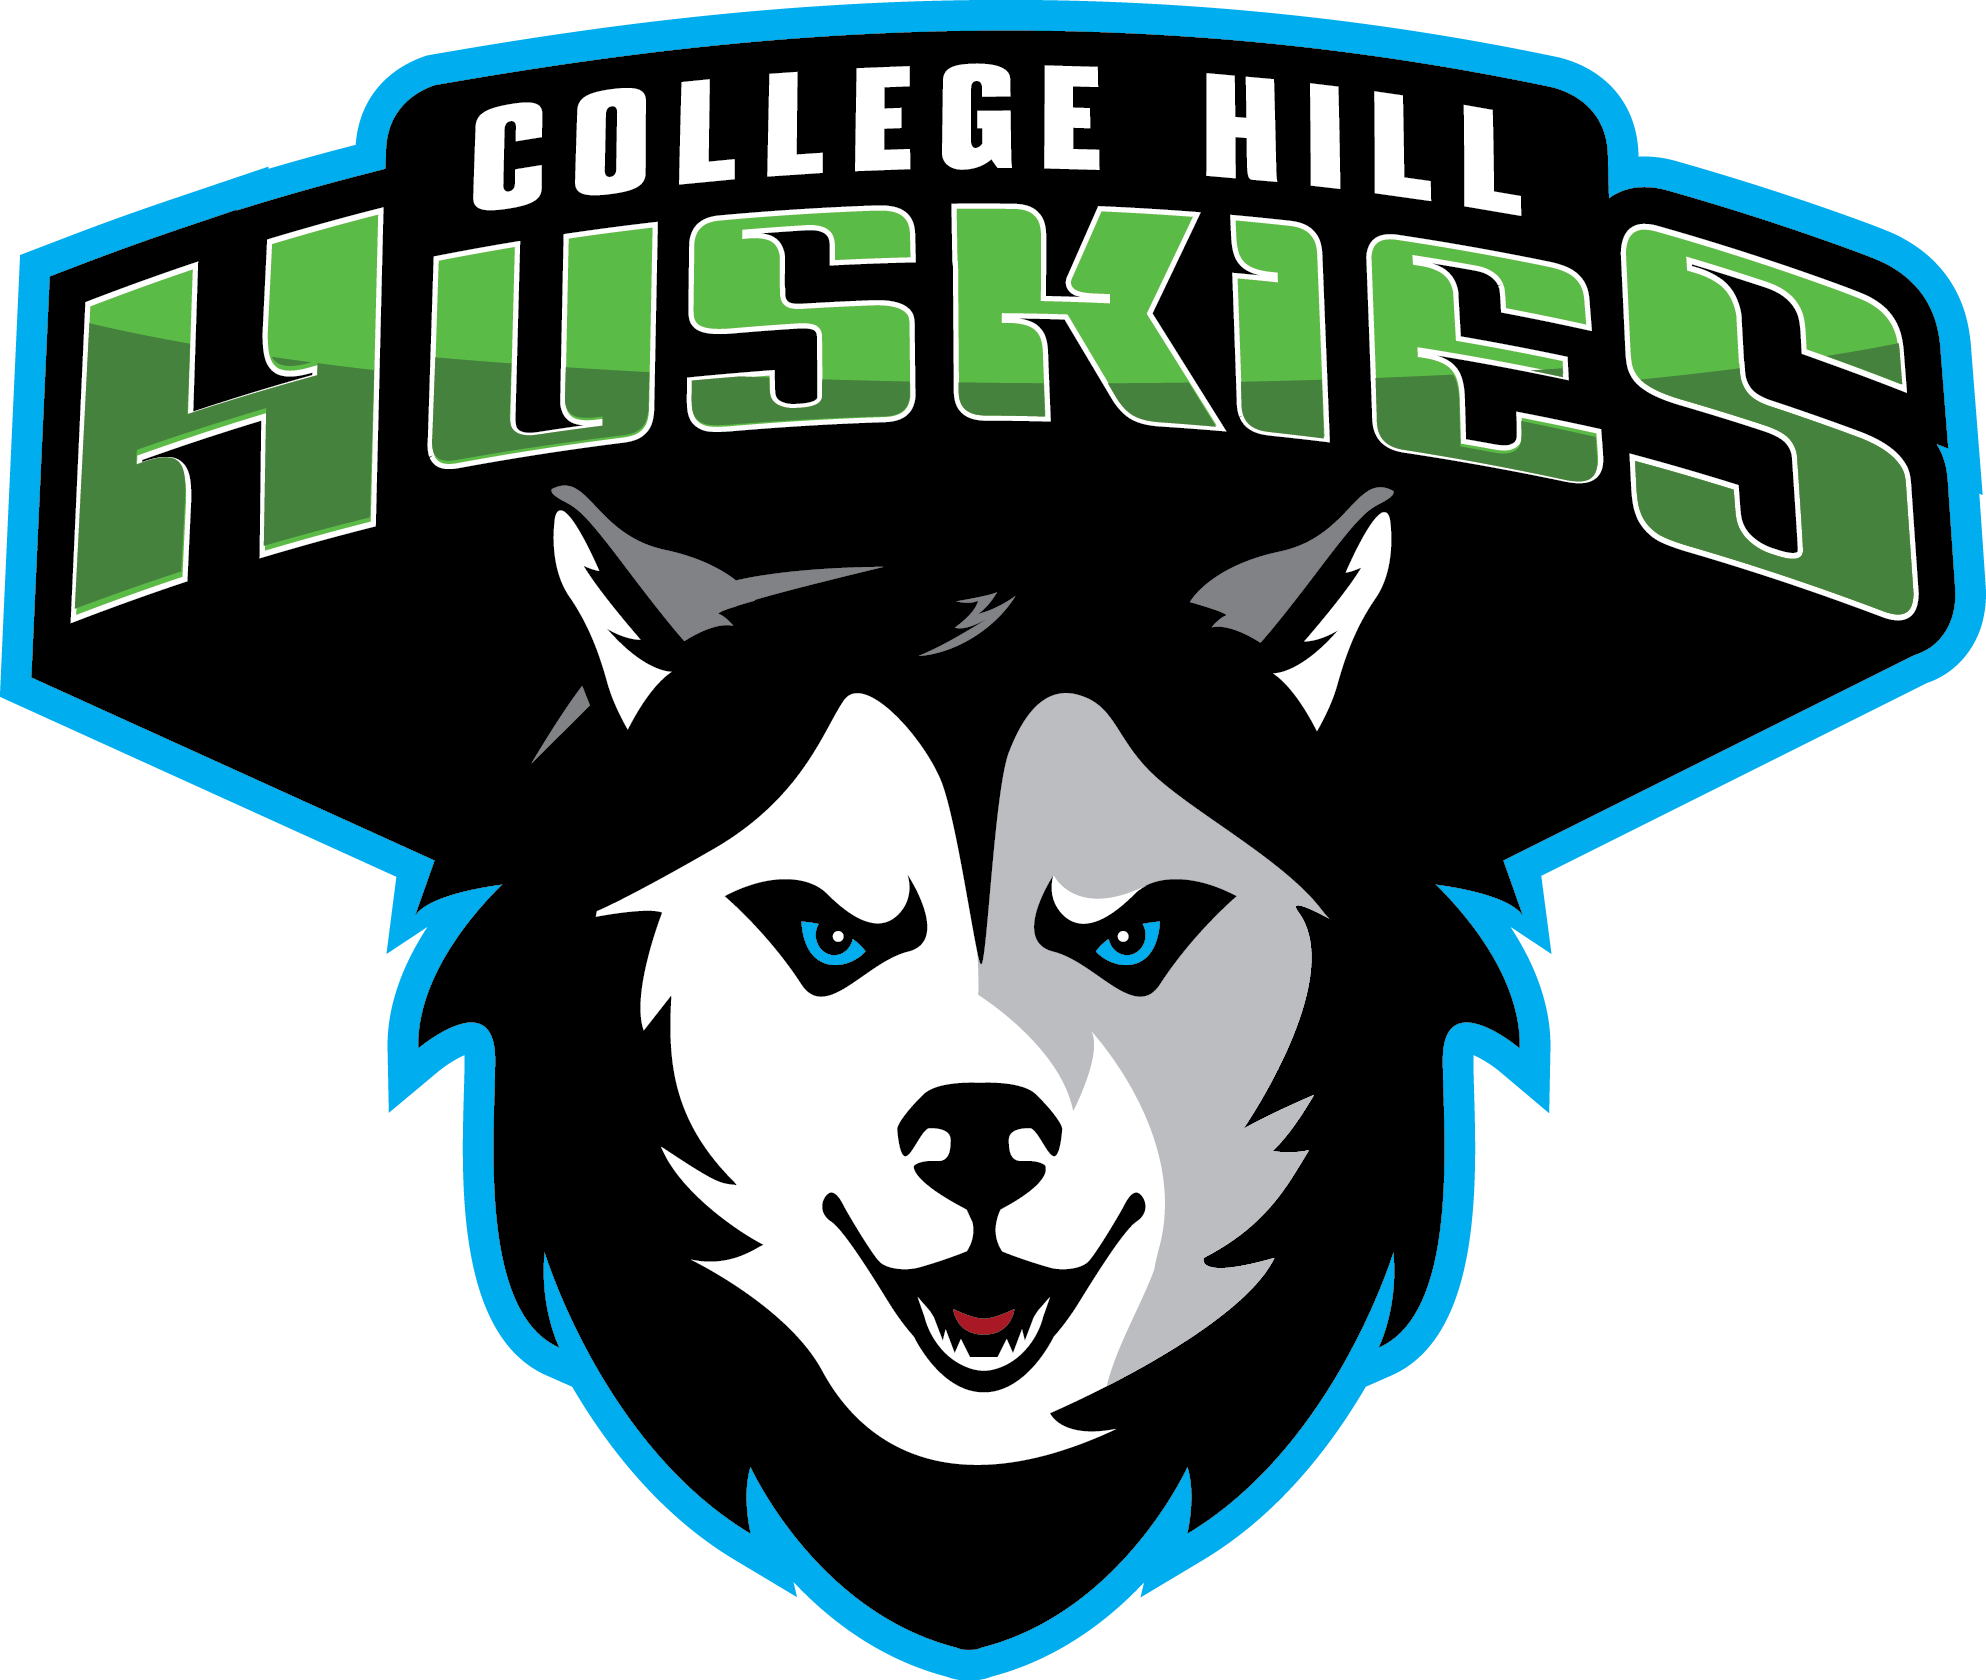 College Hill Public School logo